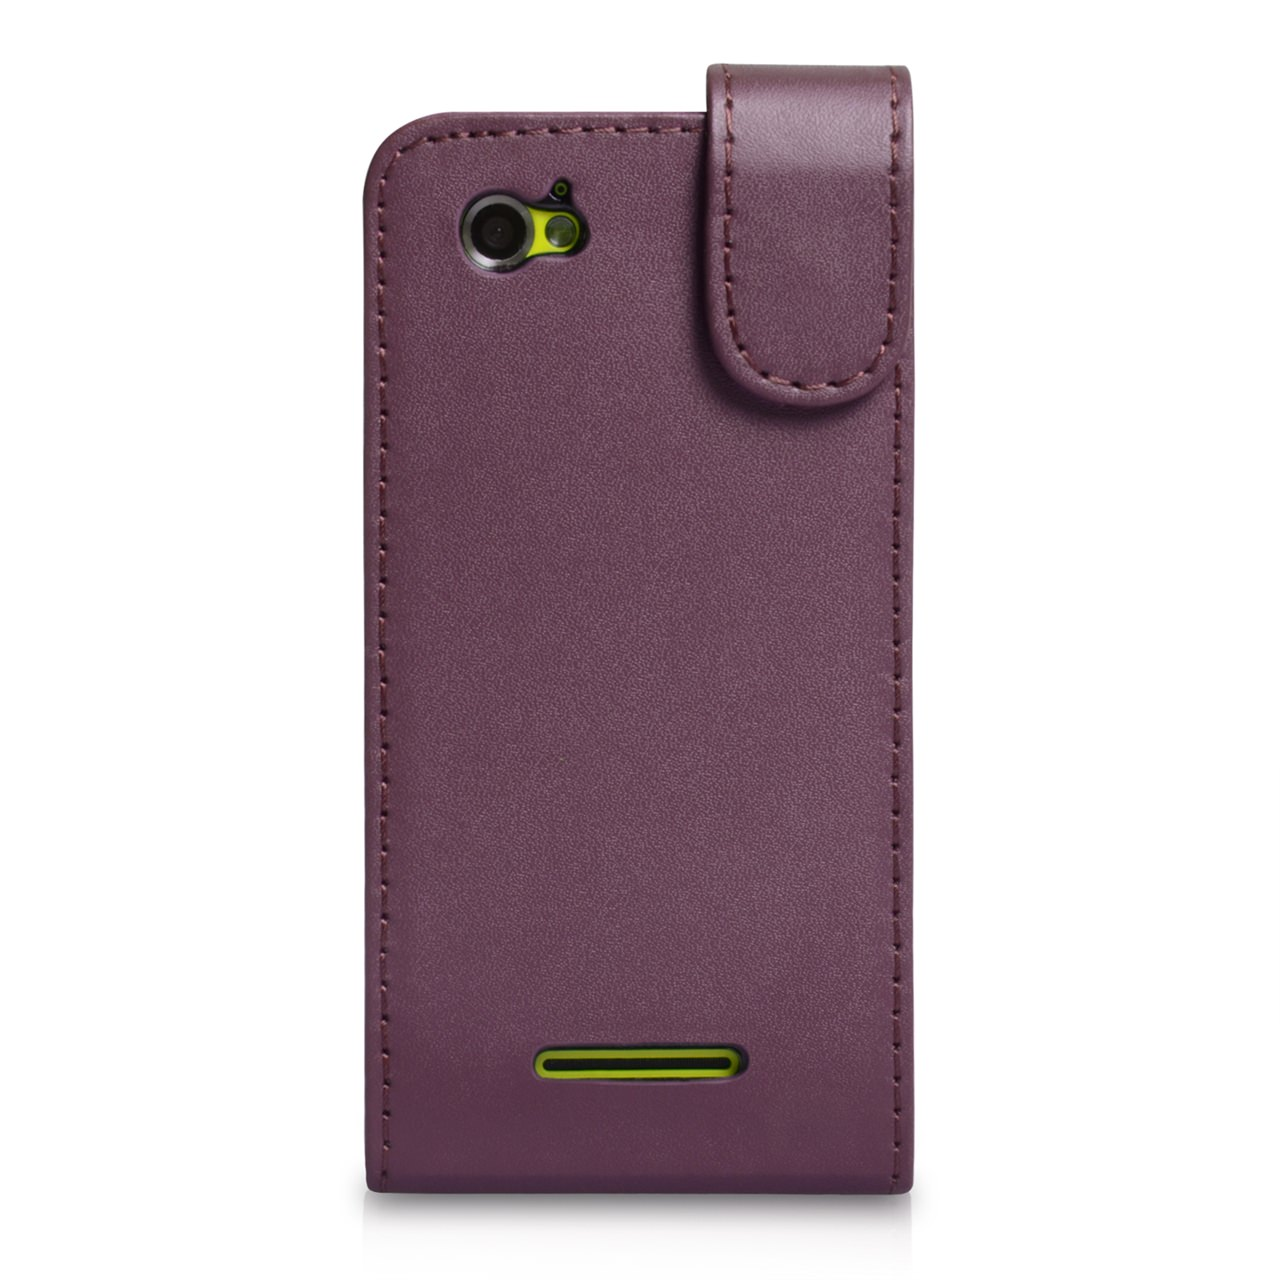 YouSave Accessories Sony Xperia M Leather Effect Flip Case - Purple